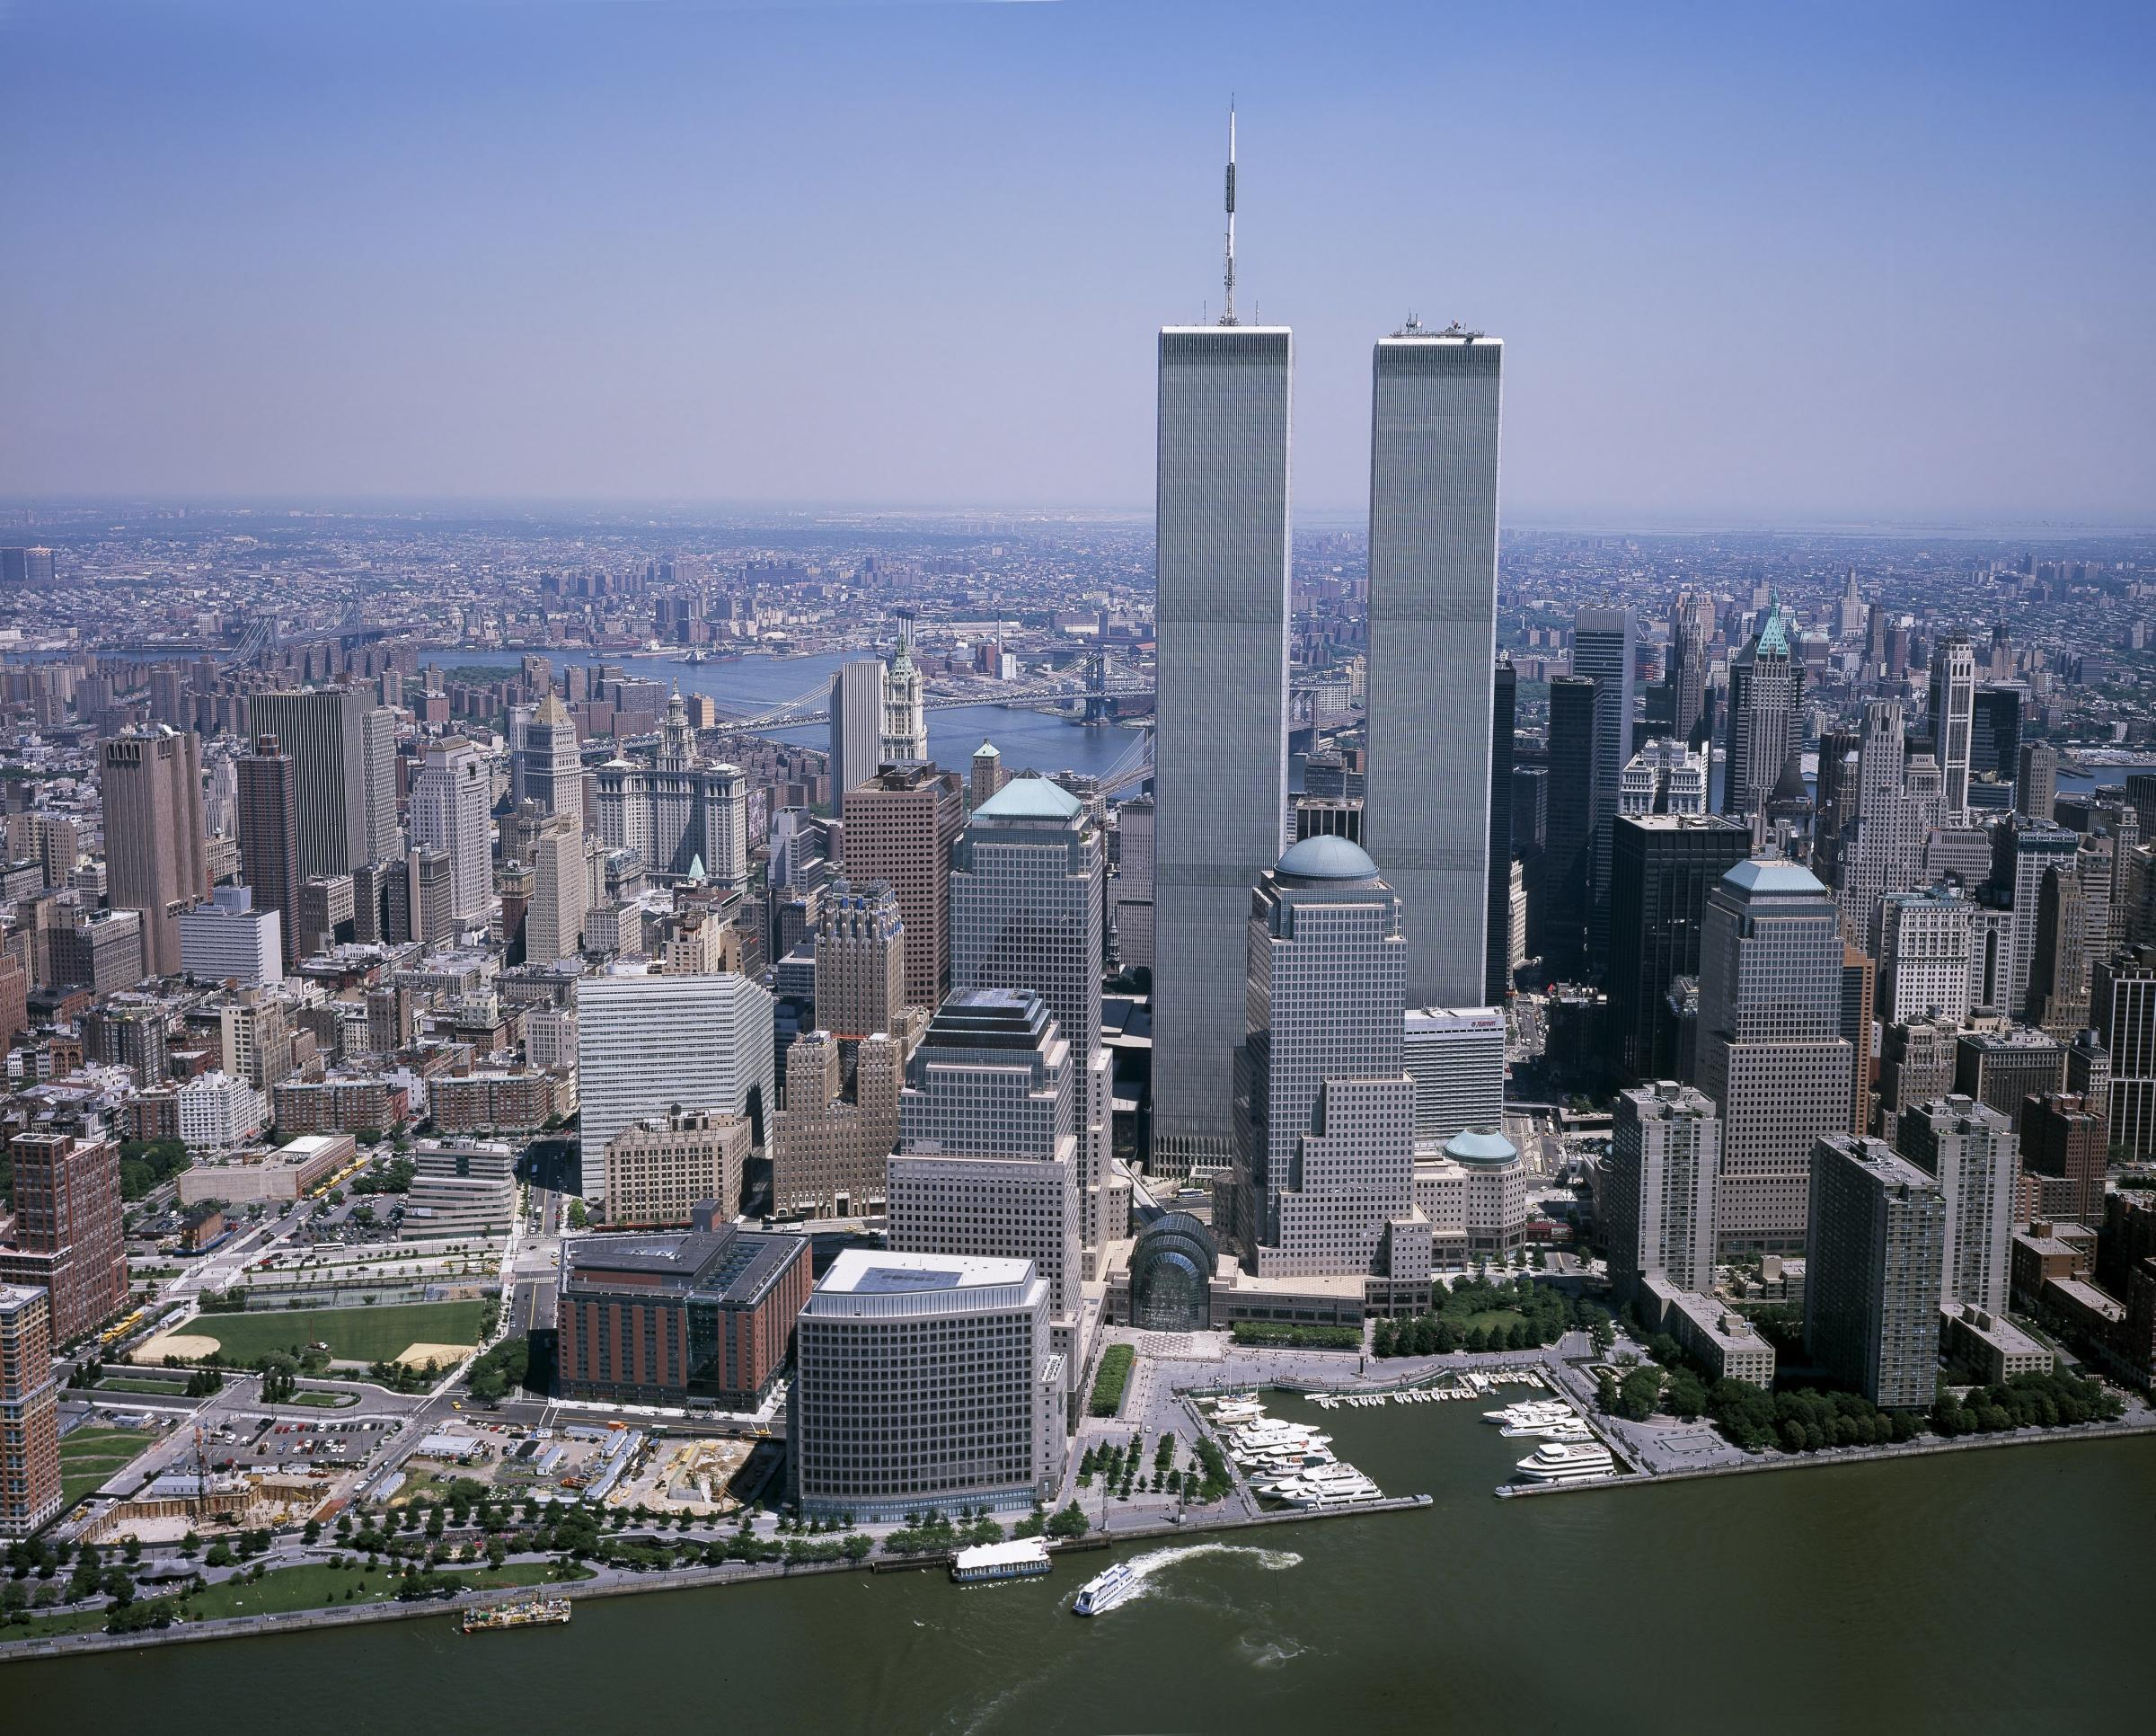 The World Trade Centers prior to 9/11. Picture: Pixabay.